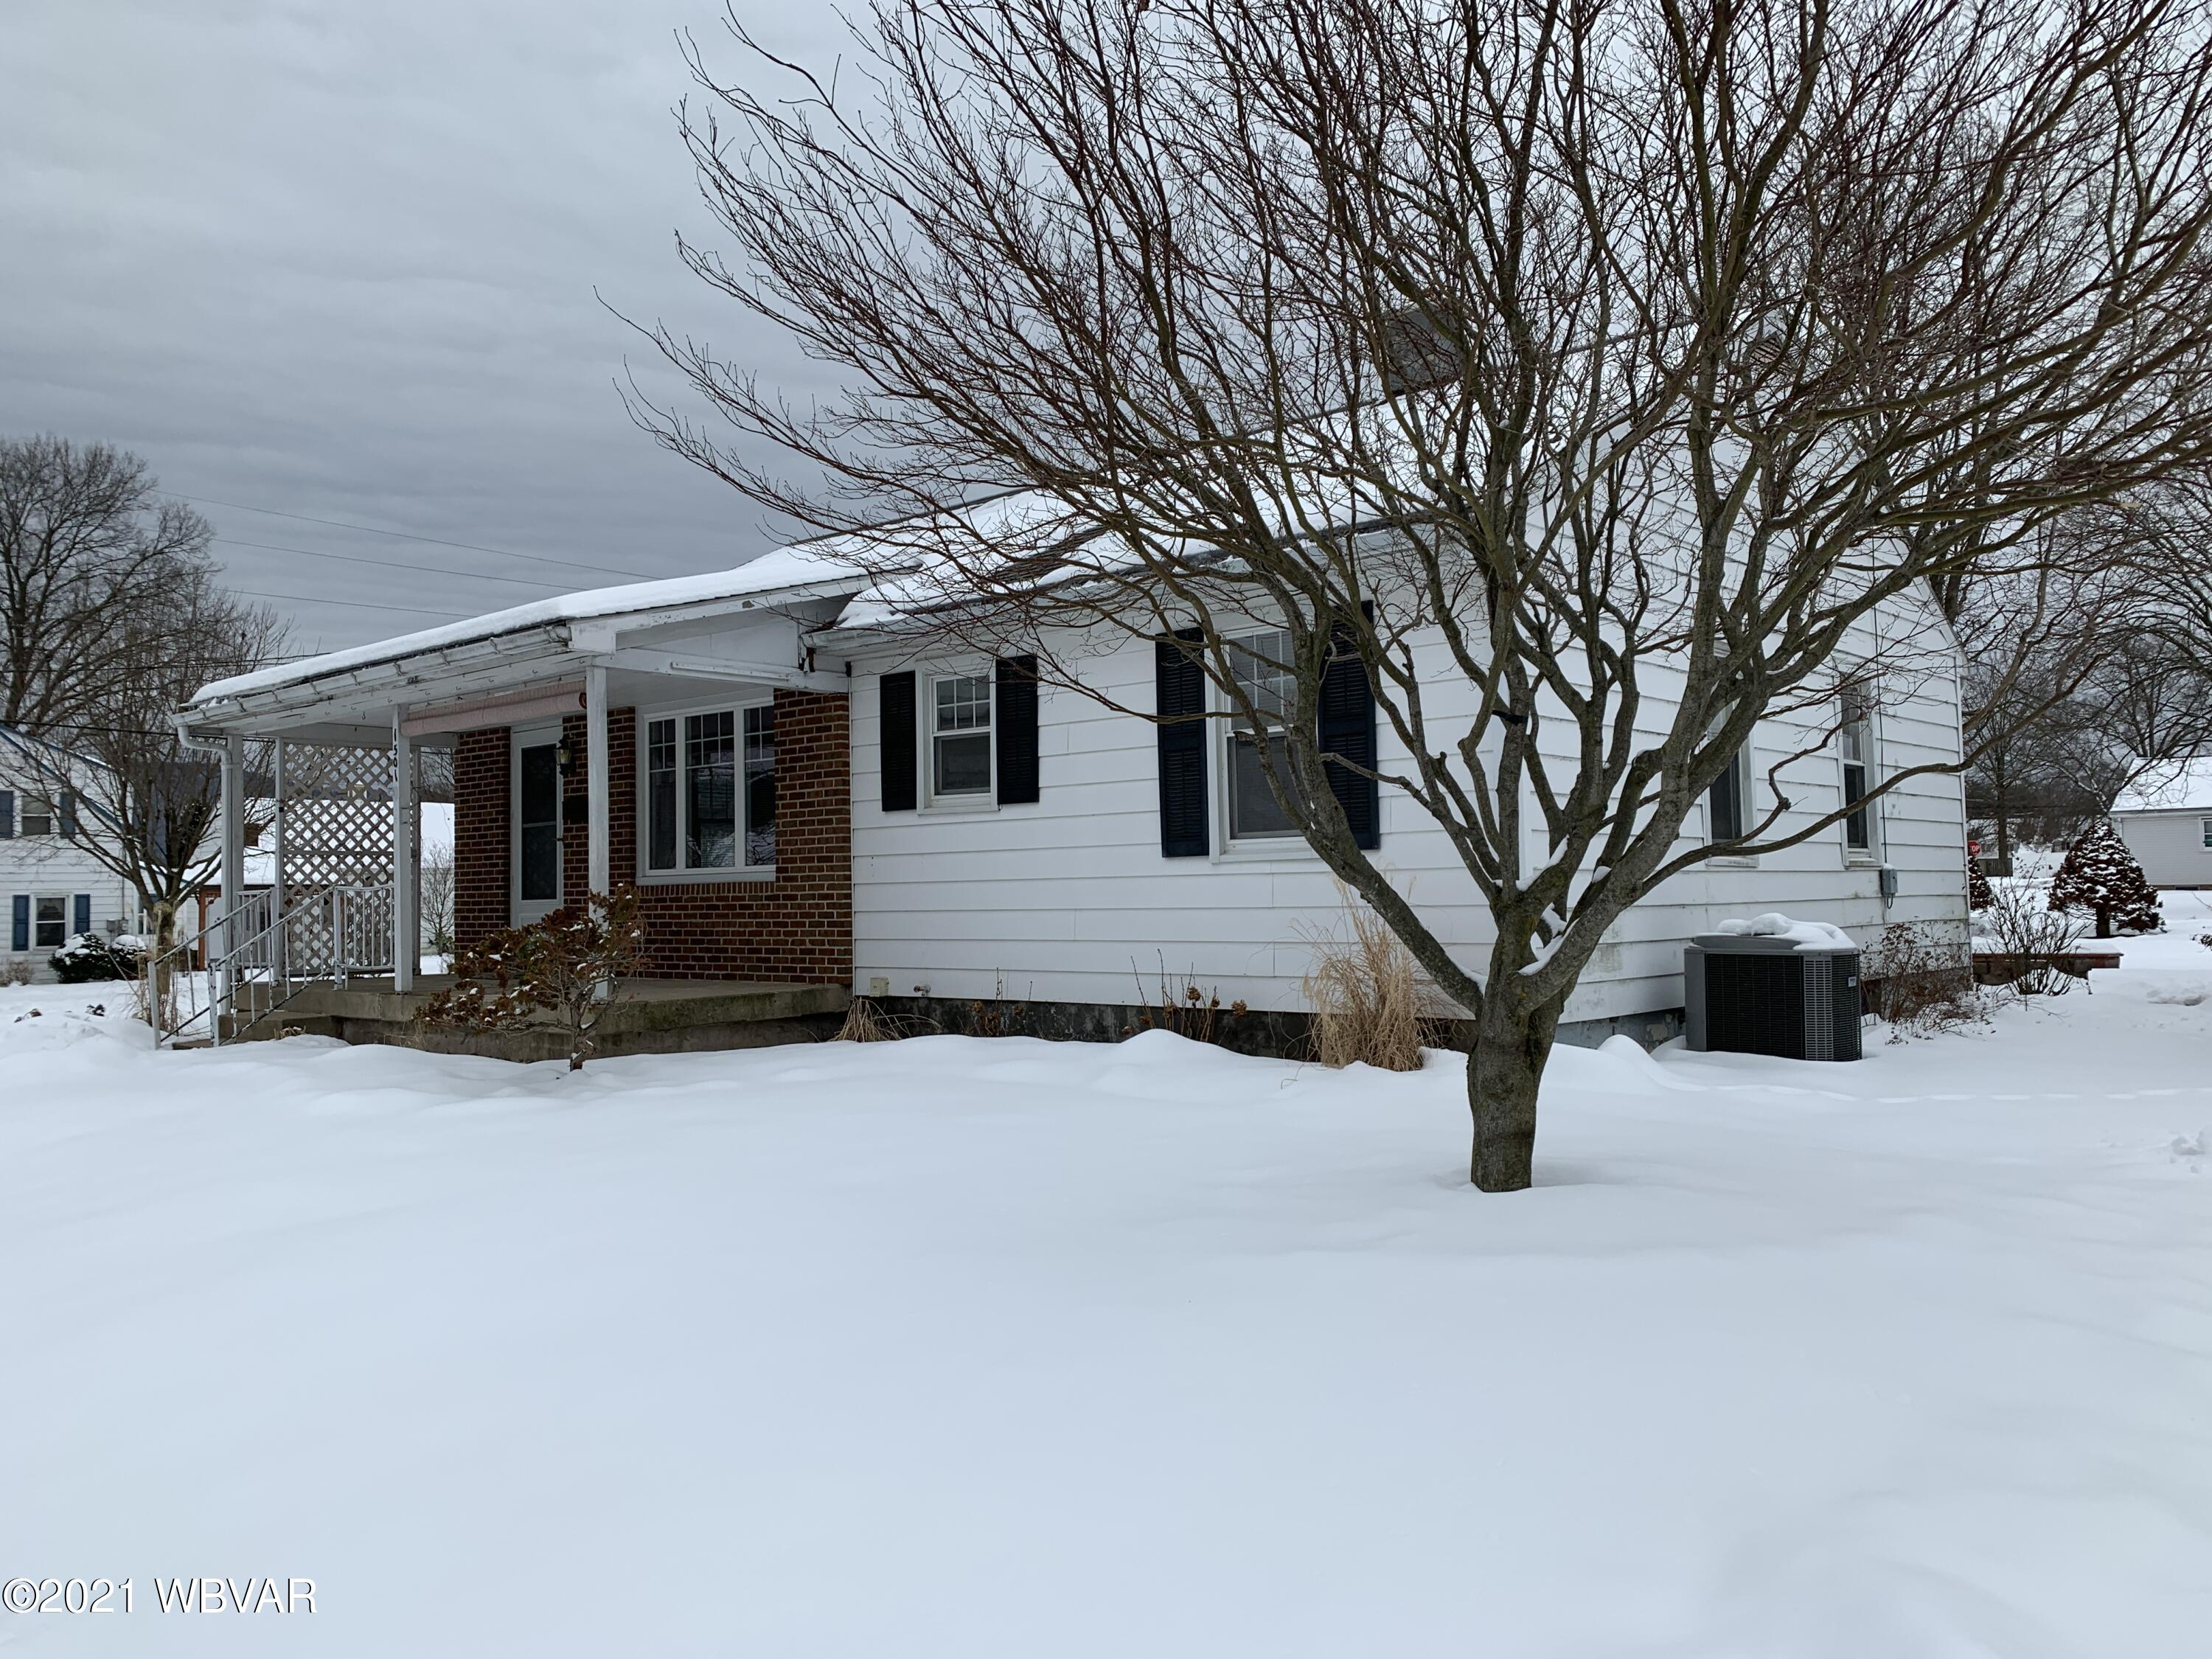 1501 OAKES AVENUE, Williamsport, PA 17701, 3 Bedrooms Bedrooms, ,1 BathroomBathrooms,Resid-lease/rental,For sale,OAKES,WB-91893